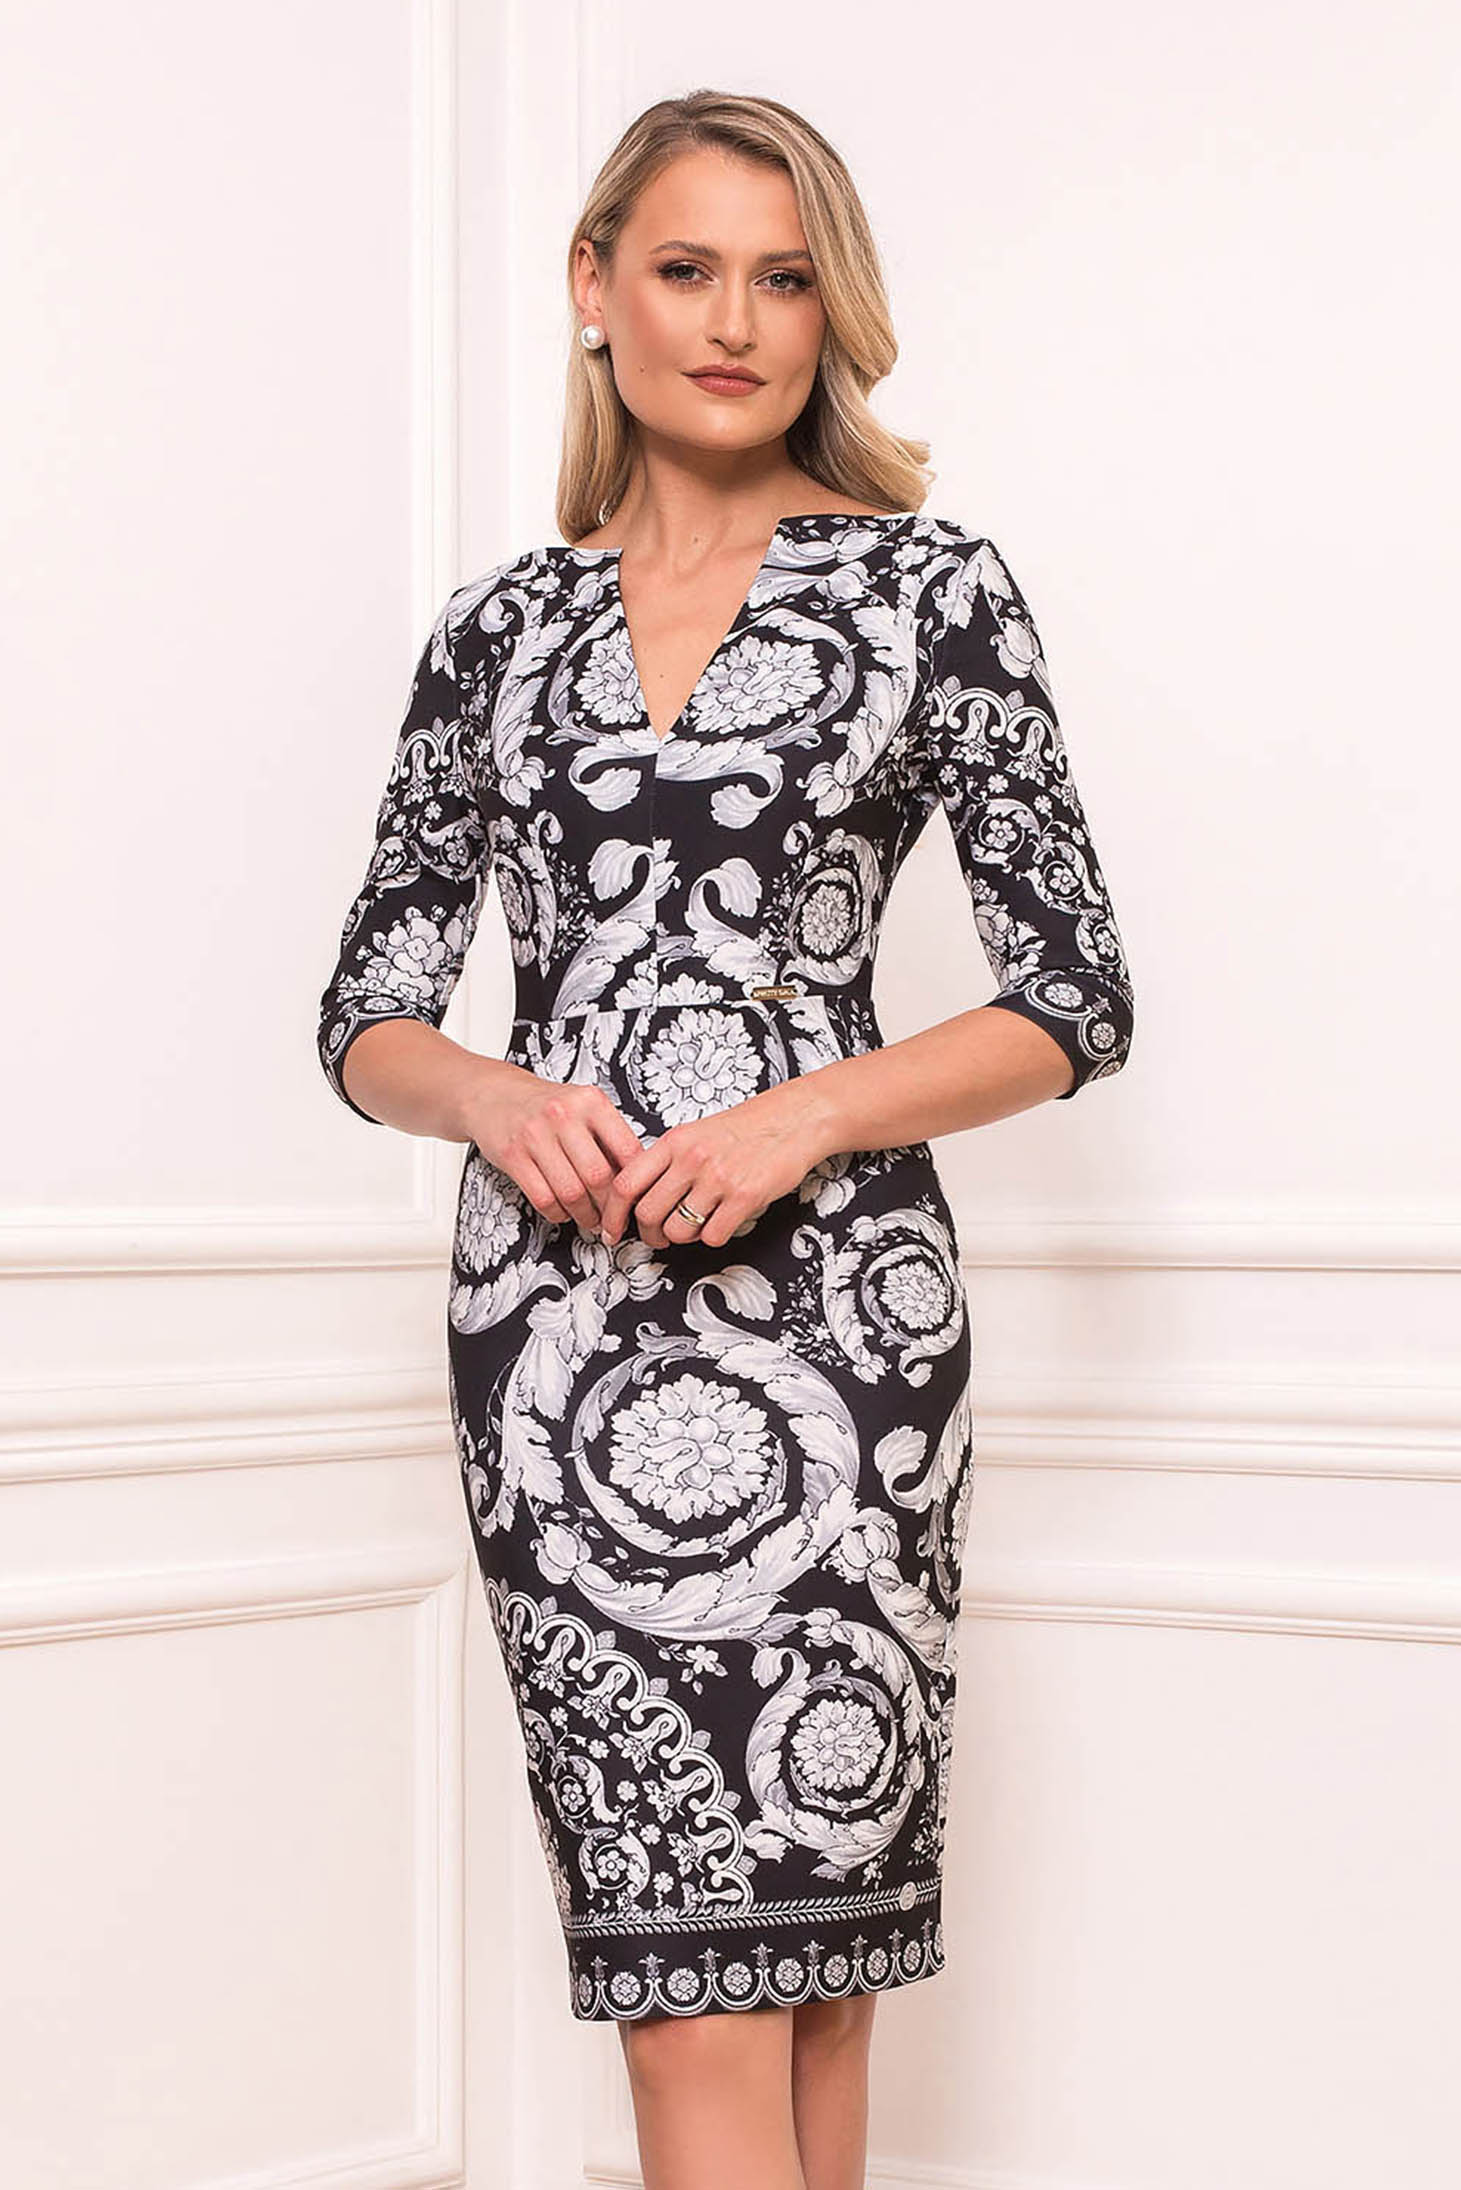 Silver dress midi pencil elegant with v-neckline with 3/4 sleeves with graphic details